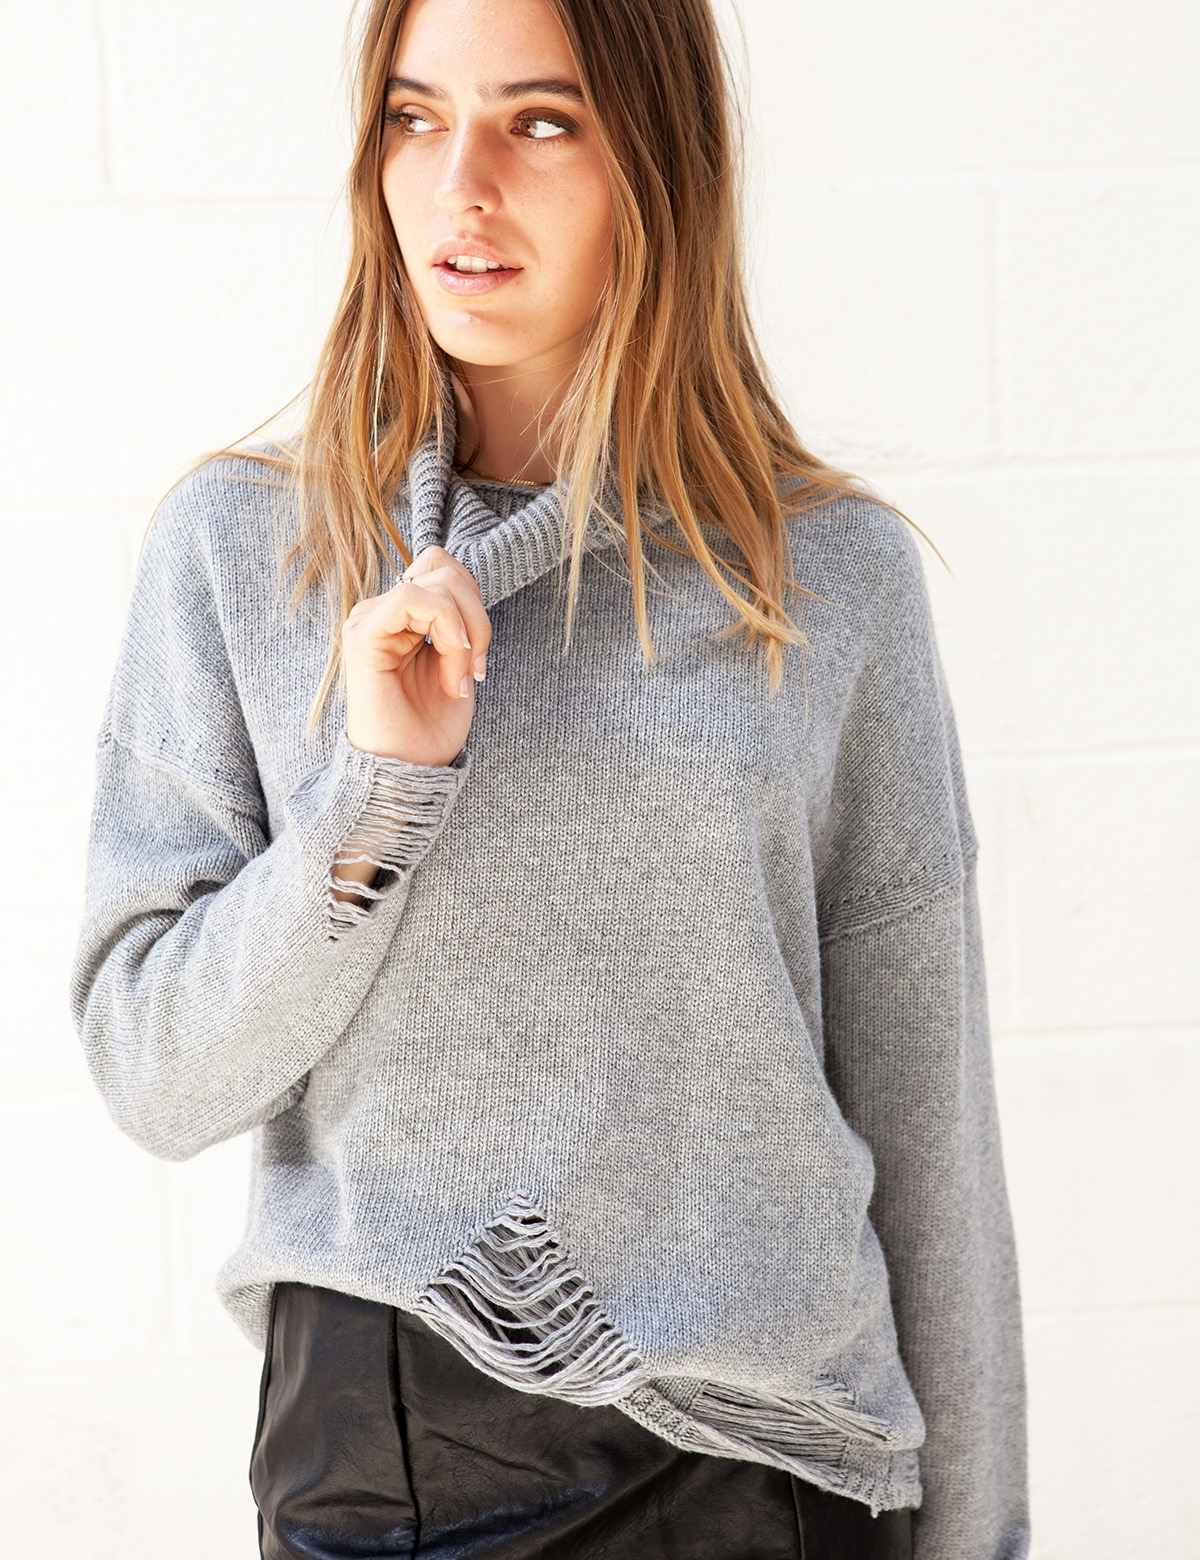 False Alarm Grey Sweater